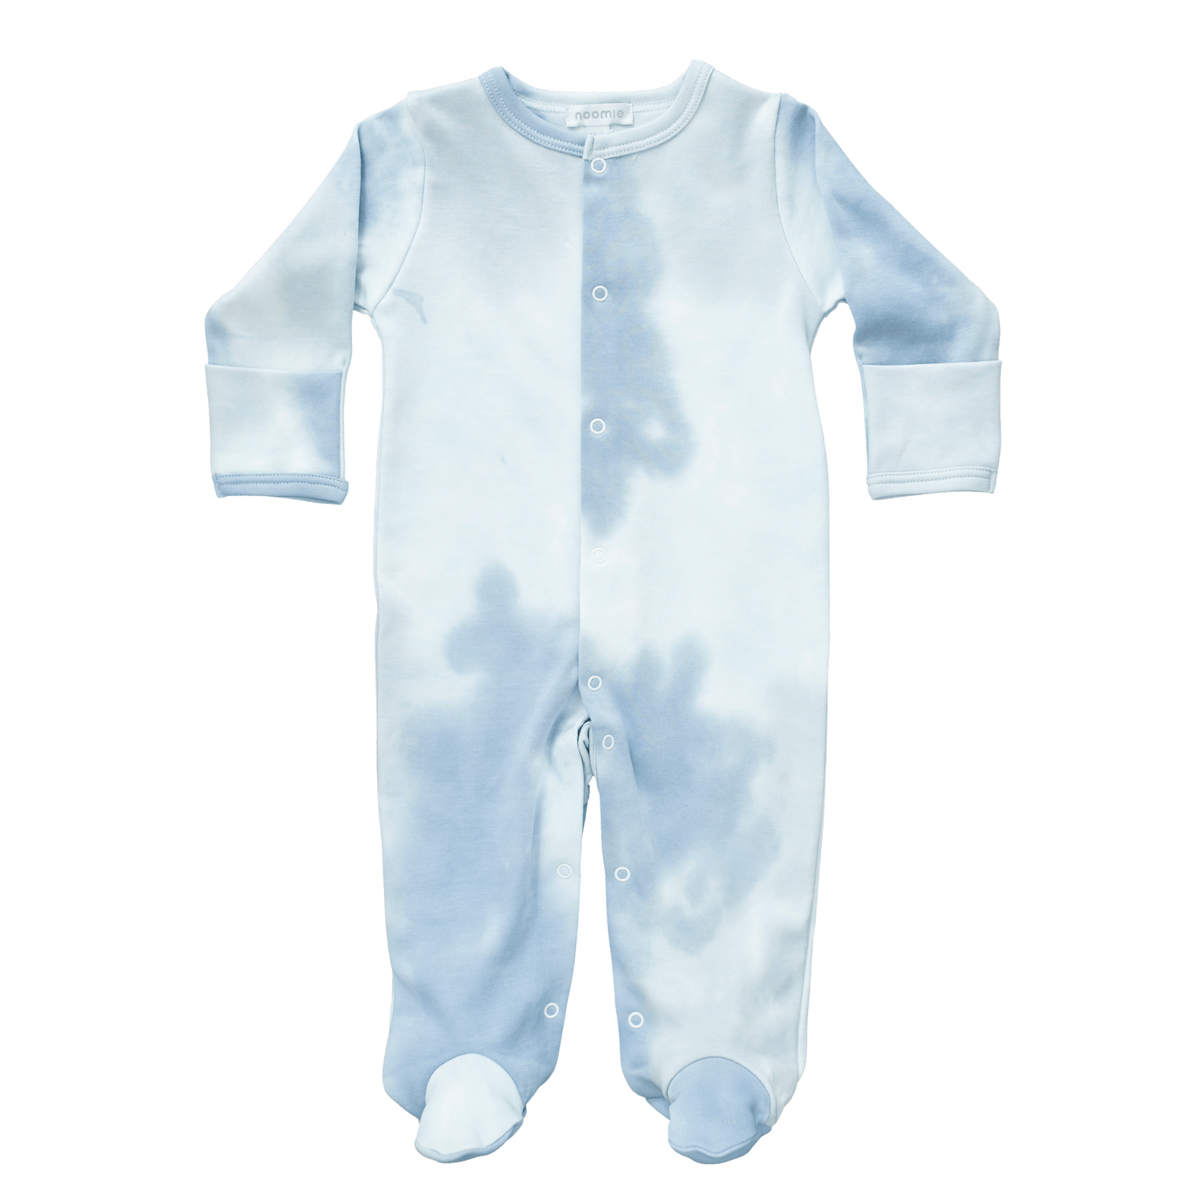 Baby Noomie Snap Footie in Blue Tie Dye